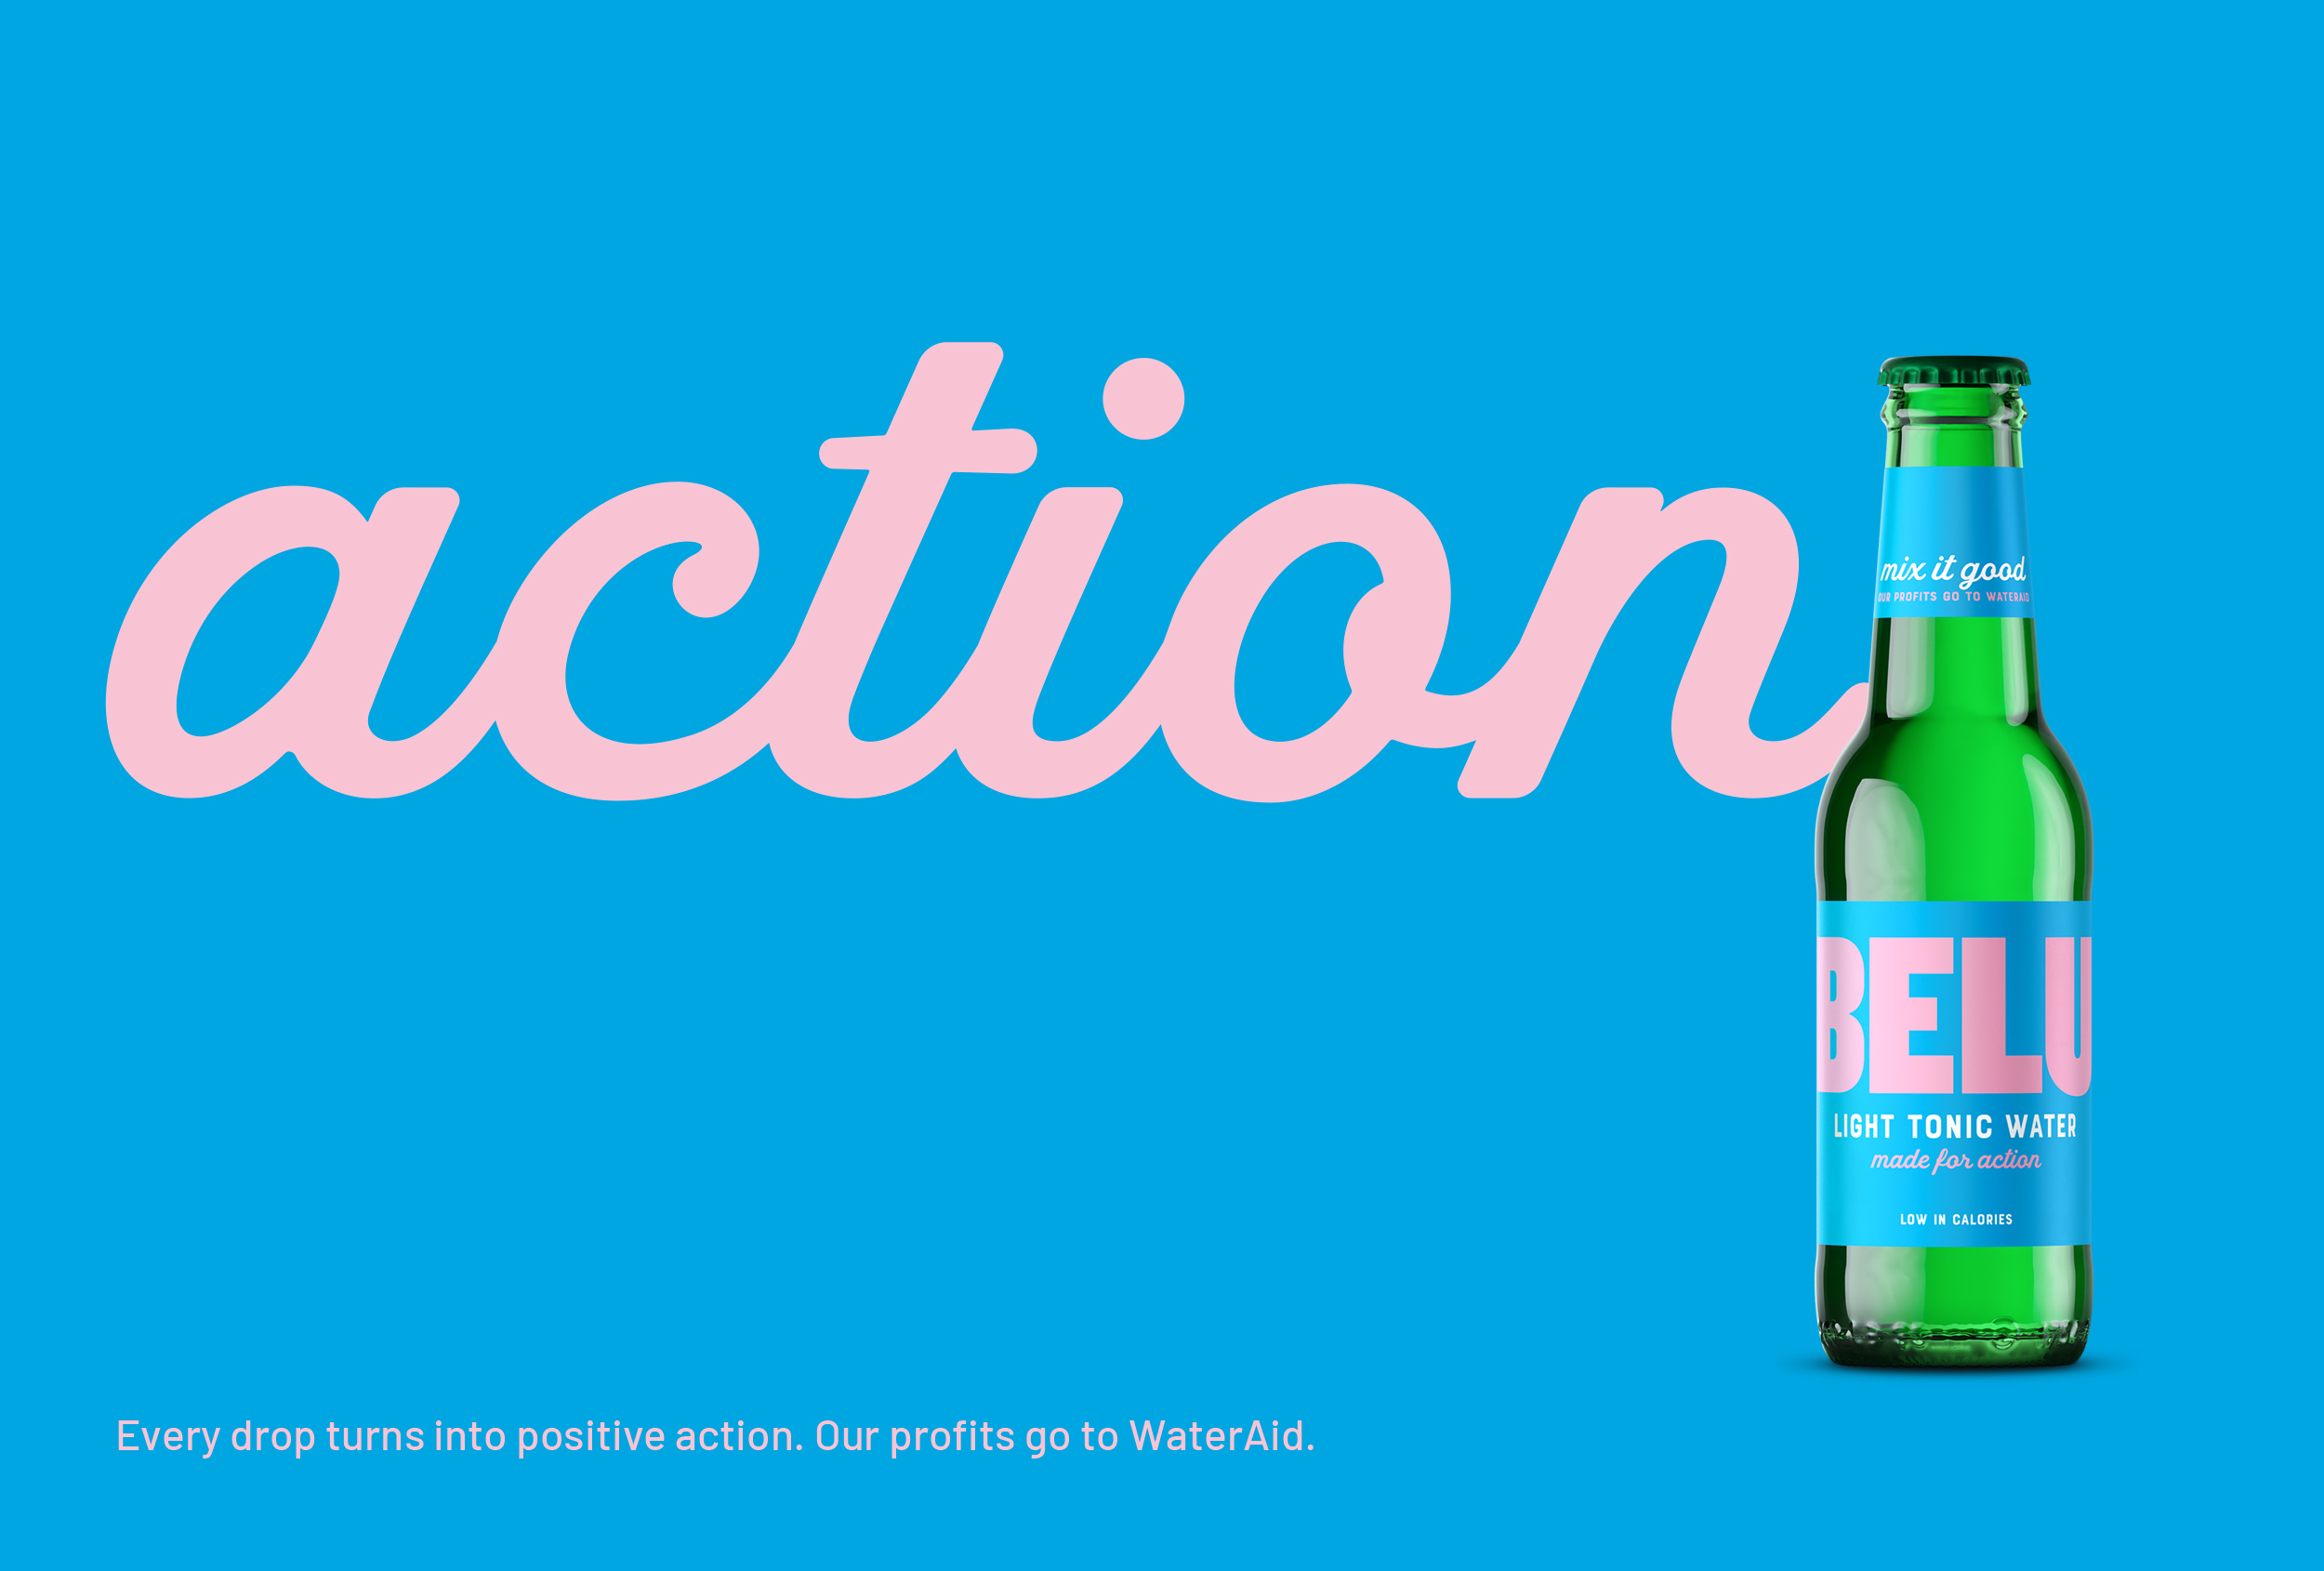 'Made for action' – one of three straplines we created for Belu's range of mixers.